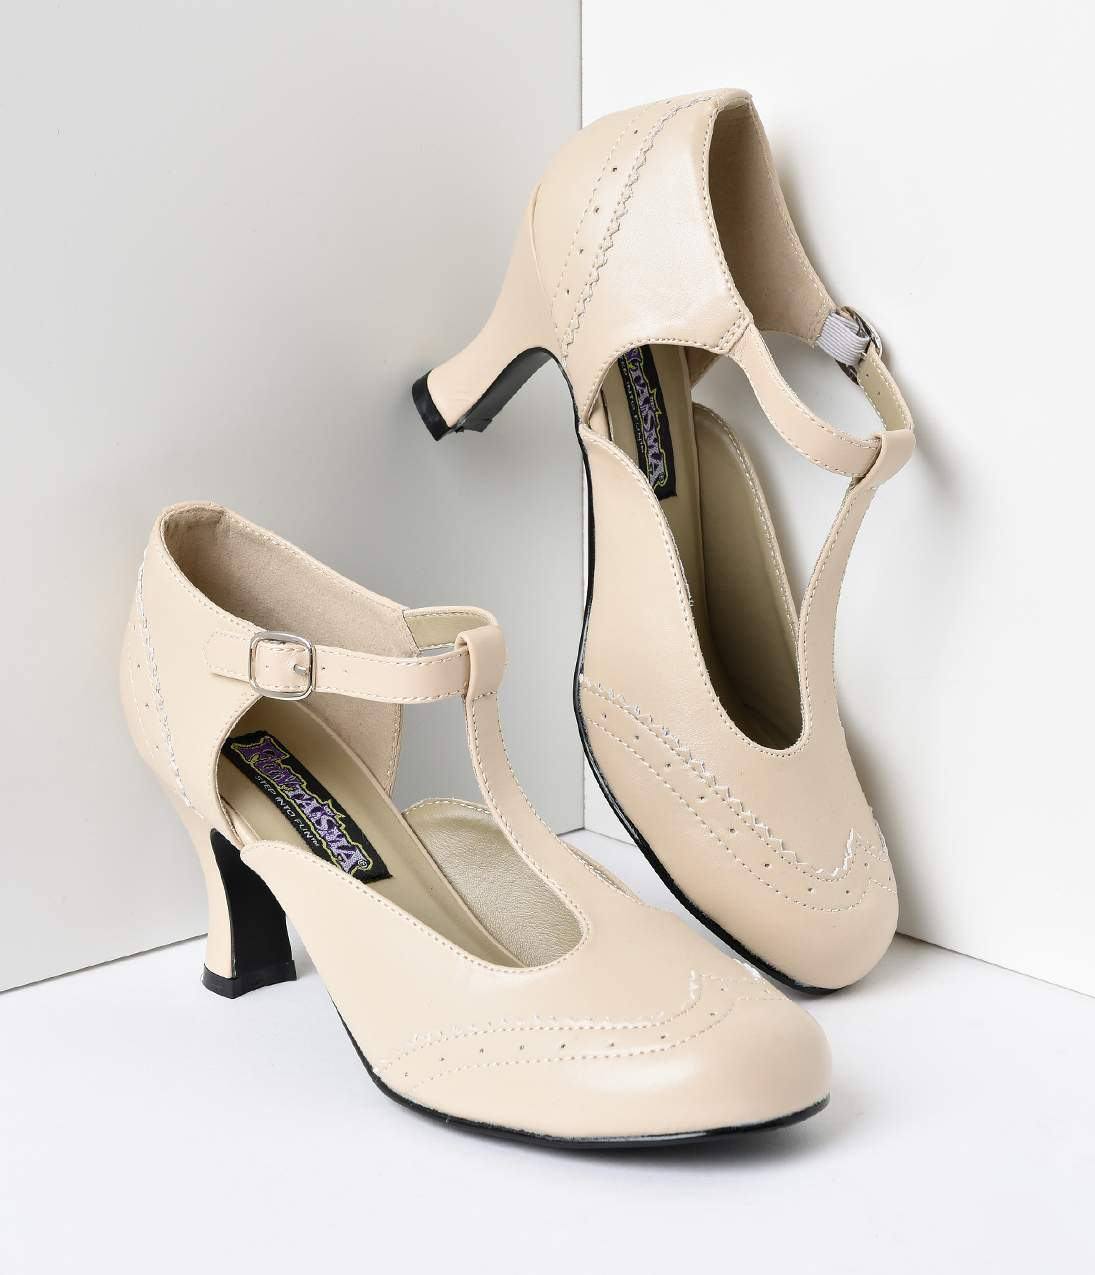 1920s Style Shoes Cream T-Strap Mary Jane Kitten Heels $58.00 AT vintagedancer.com